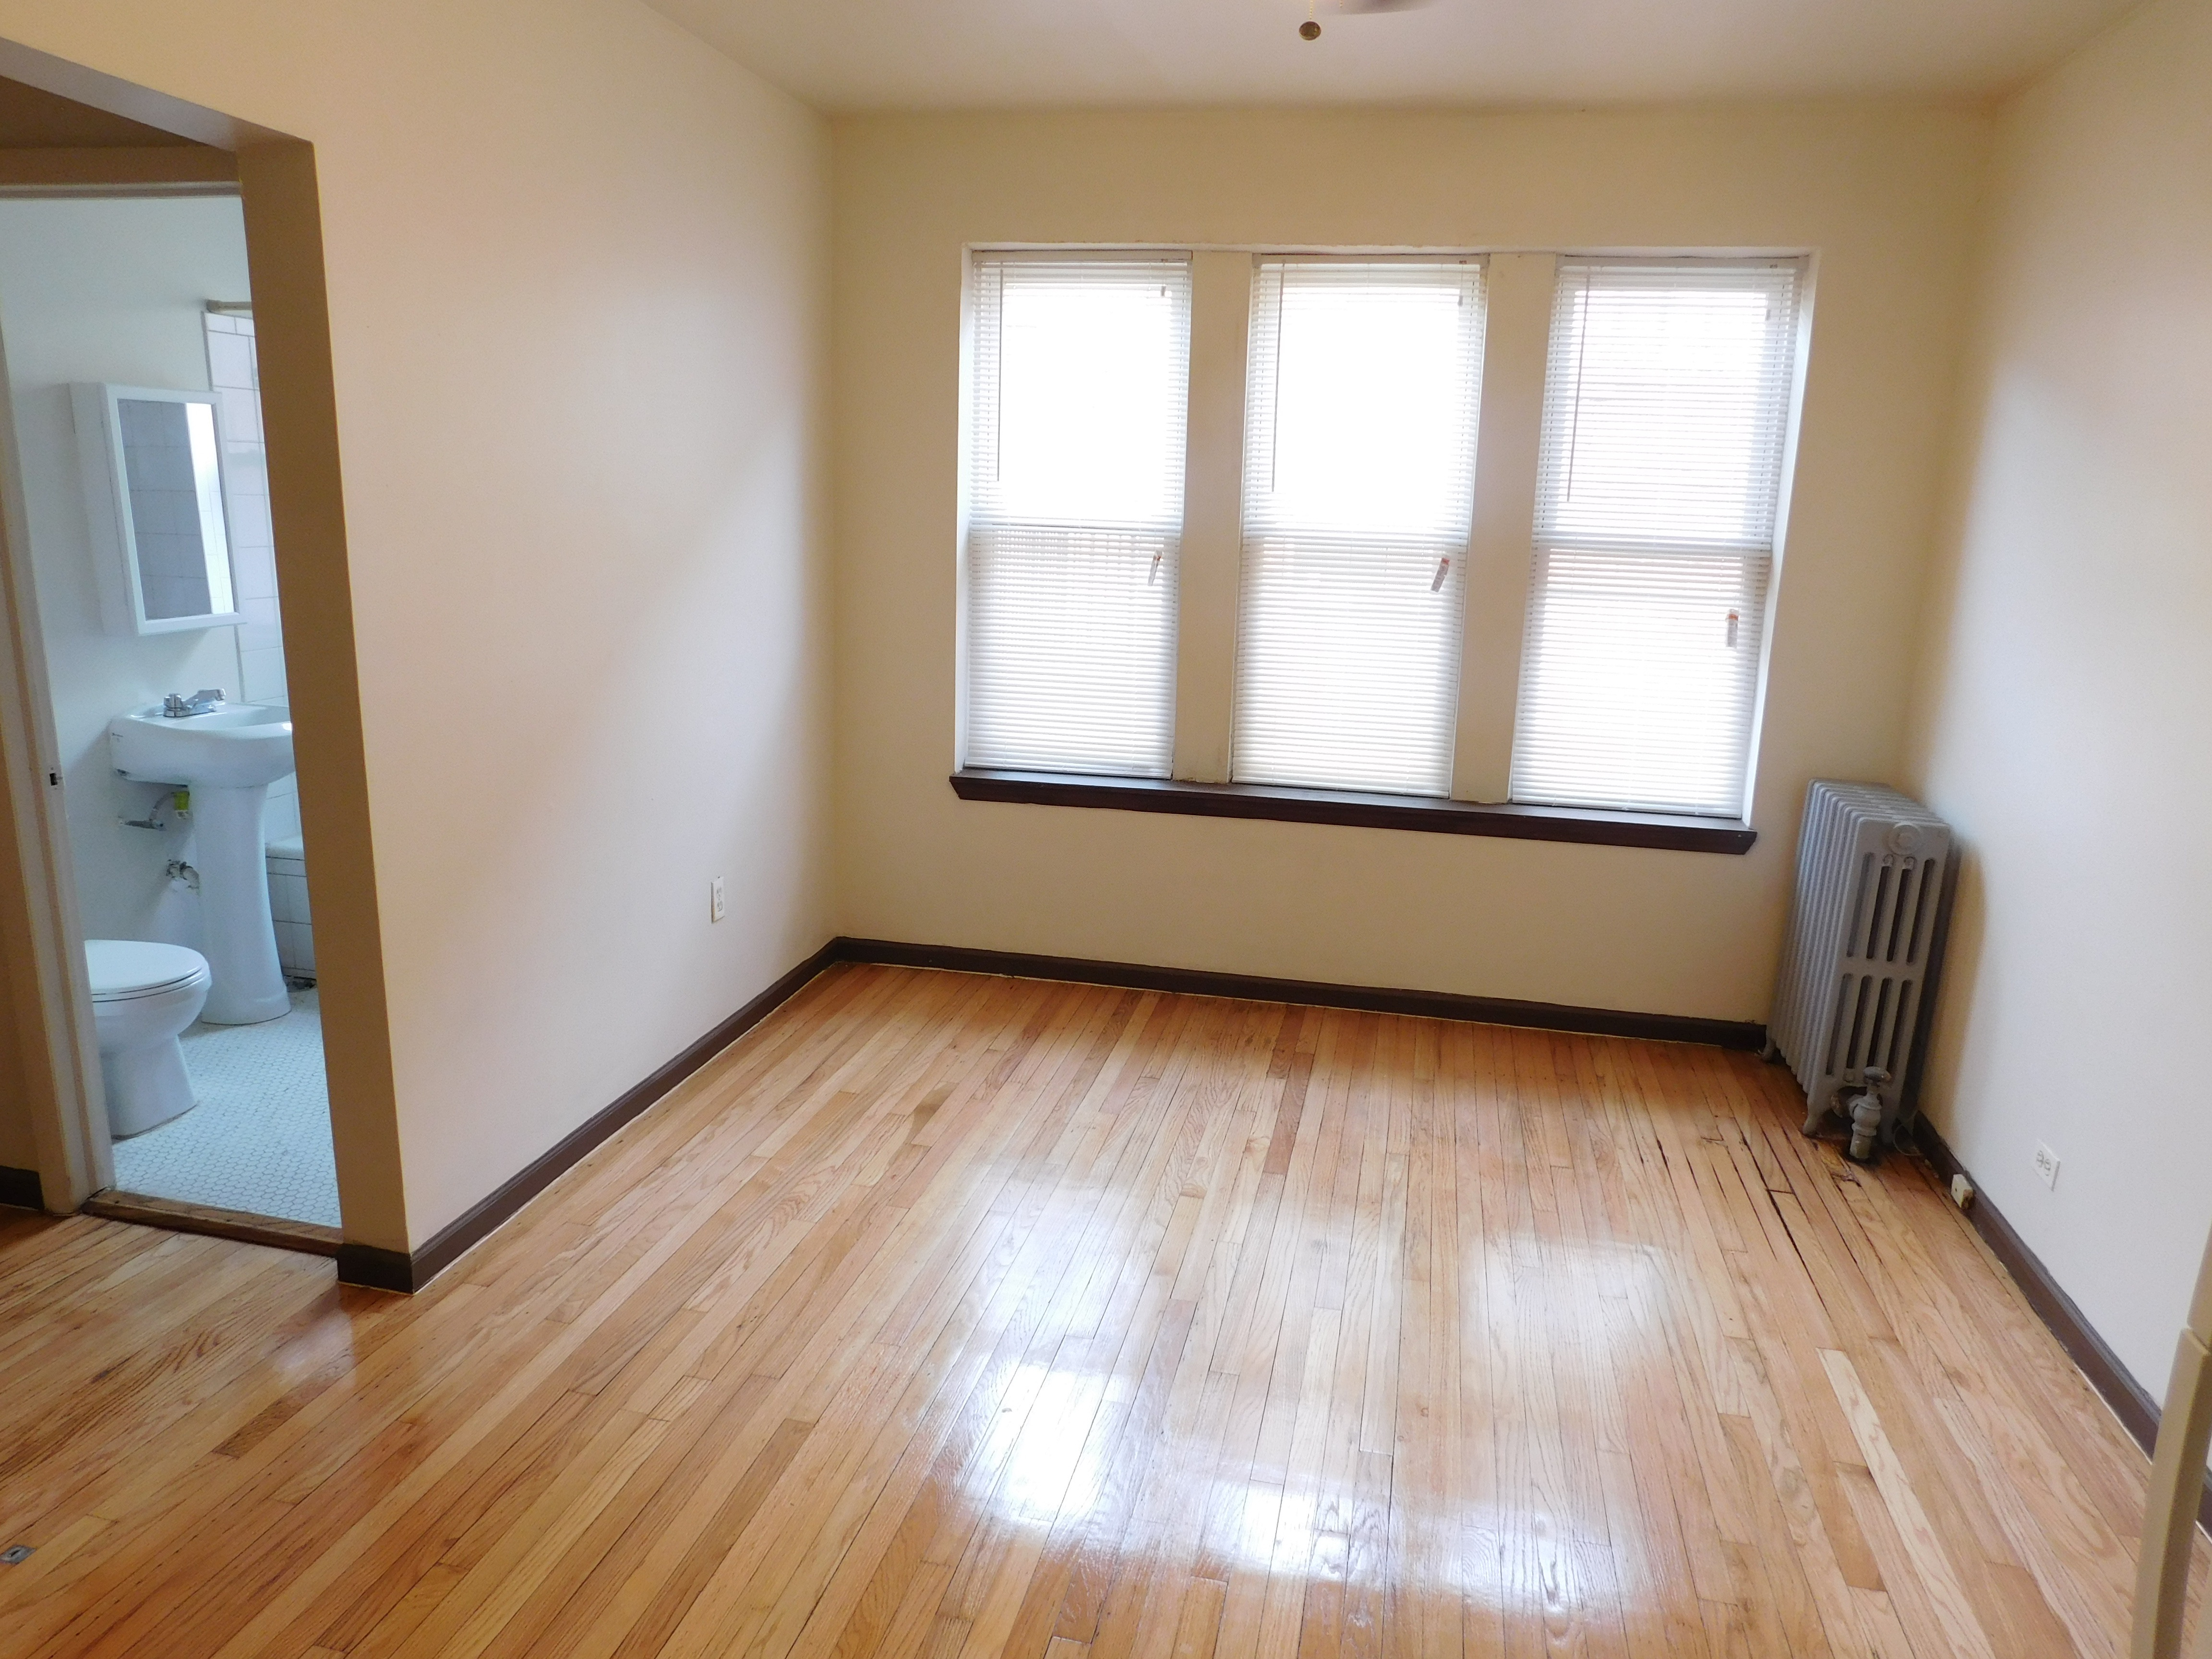 Studio apartment in Austin Chicago, 5412 W Ferdinand, Chicago IL 60644, Unit #23